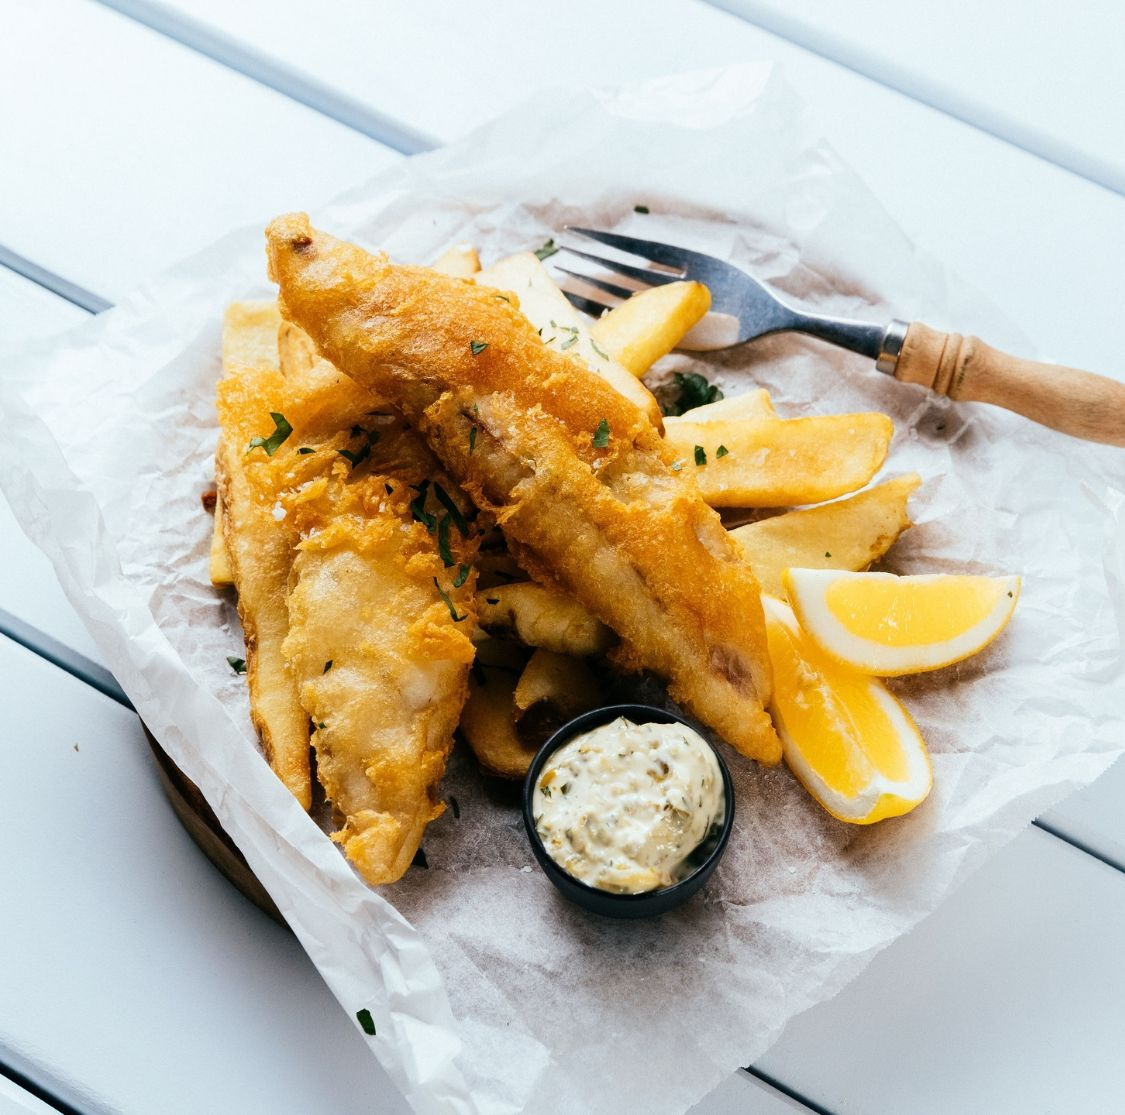 Market Galley famous fish and chips with lemon and tartare sauce